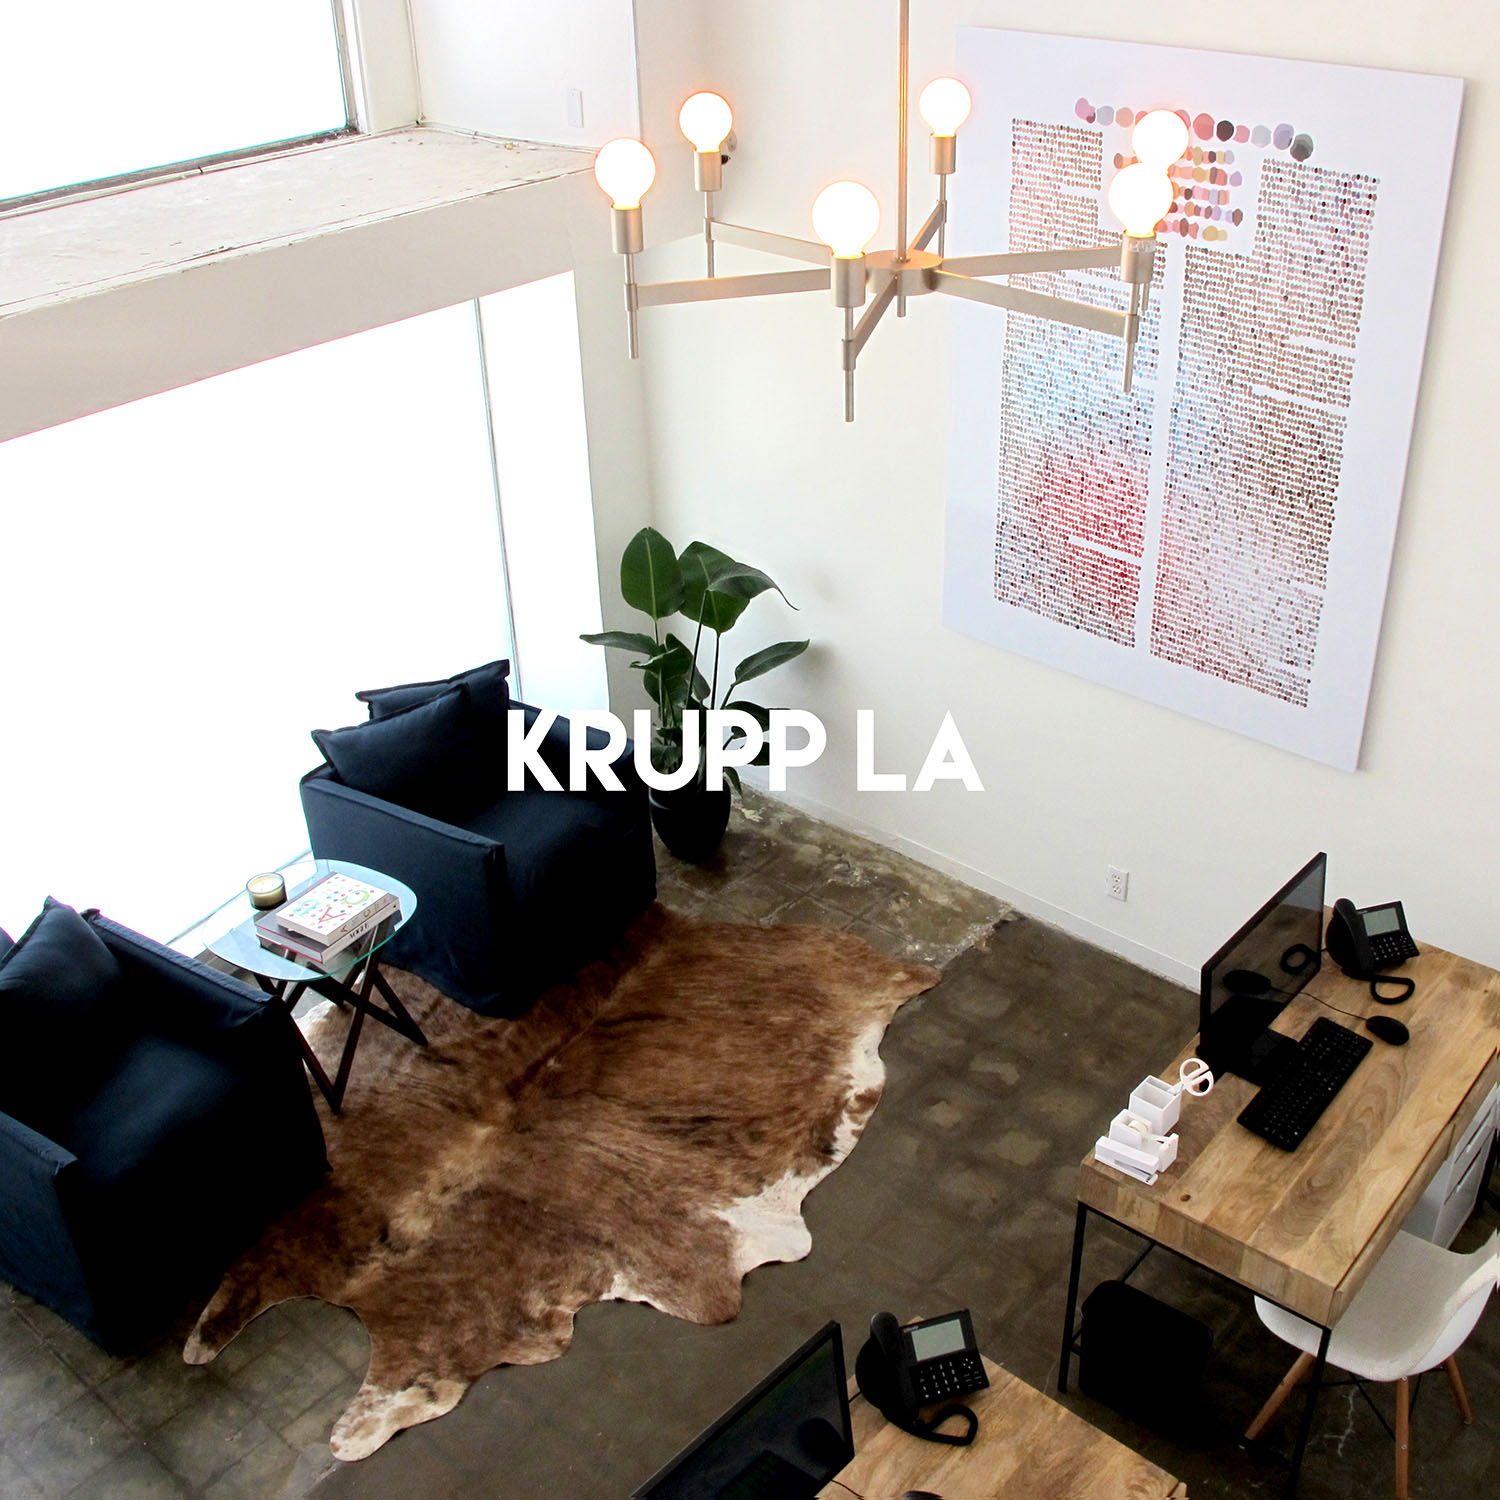 Krupp Offices in Los Angeles, CA | Office interior design by Gala Magriña Design